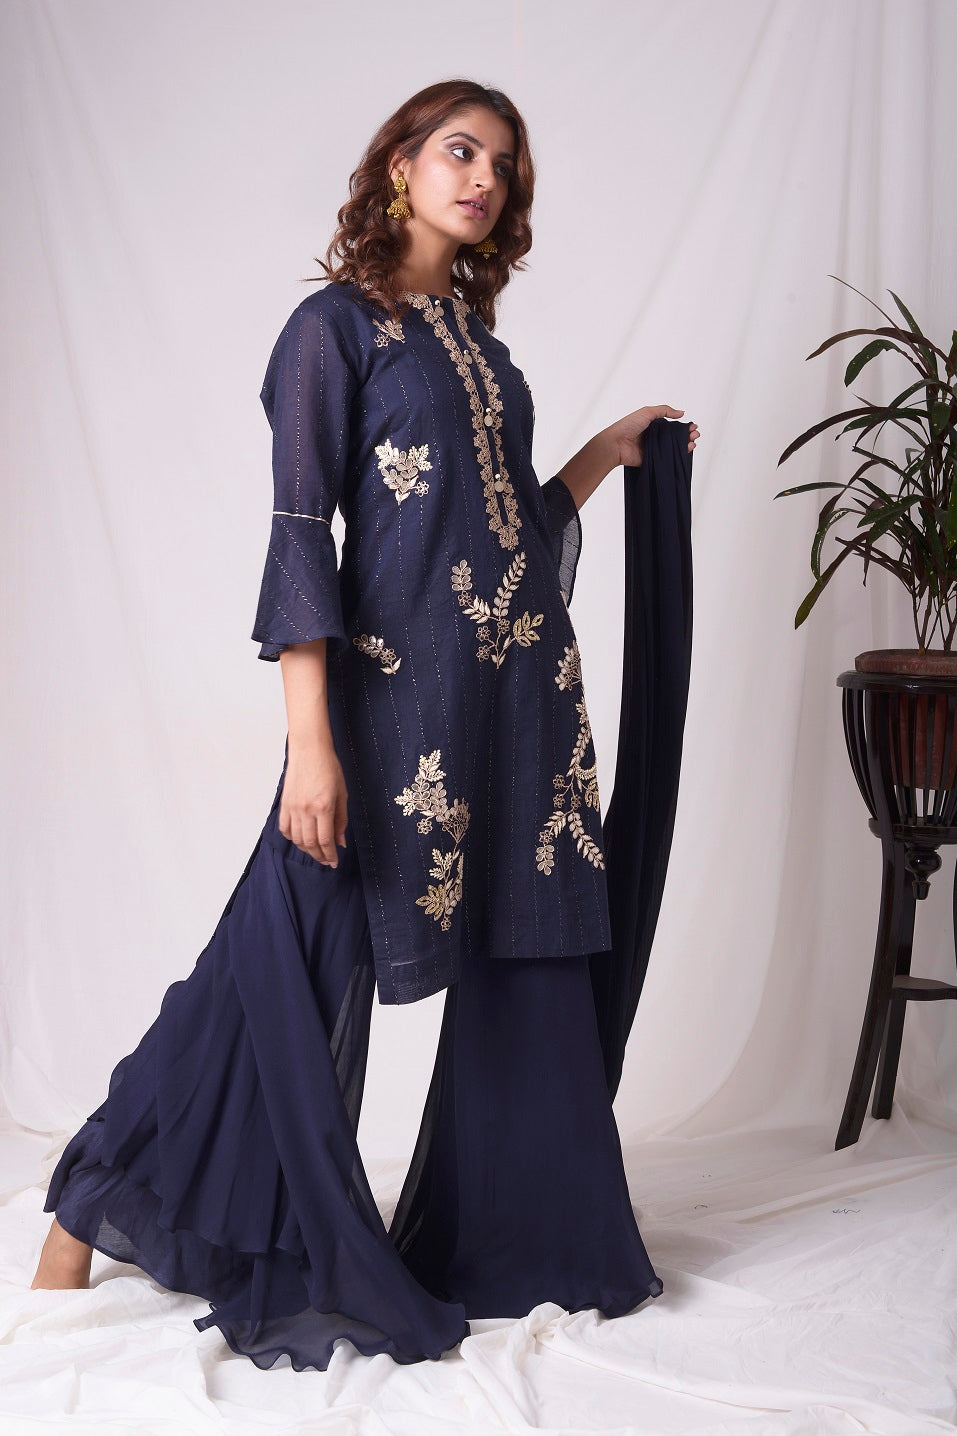 Cobalt Blue Chanderi With Gota Patti Work Suit Online in USA-full view